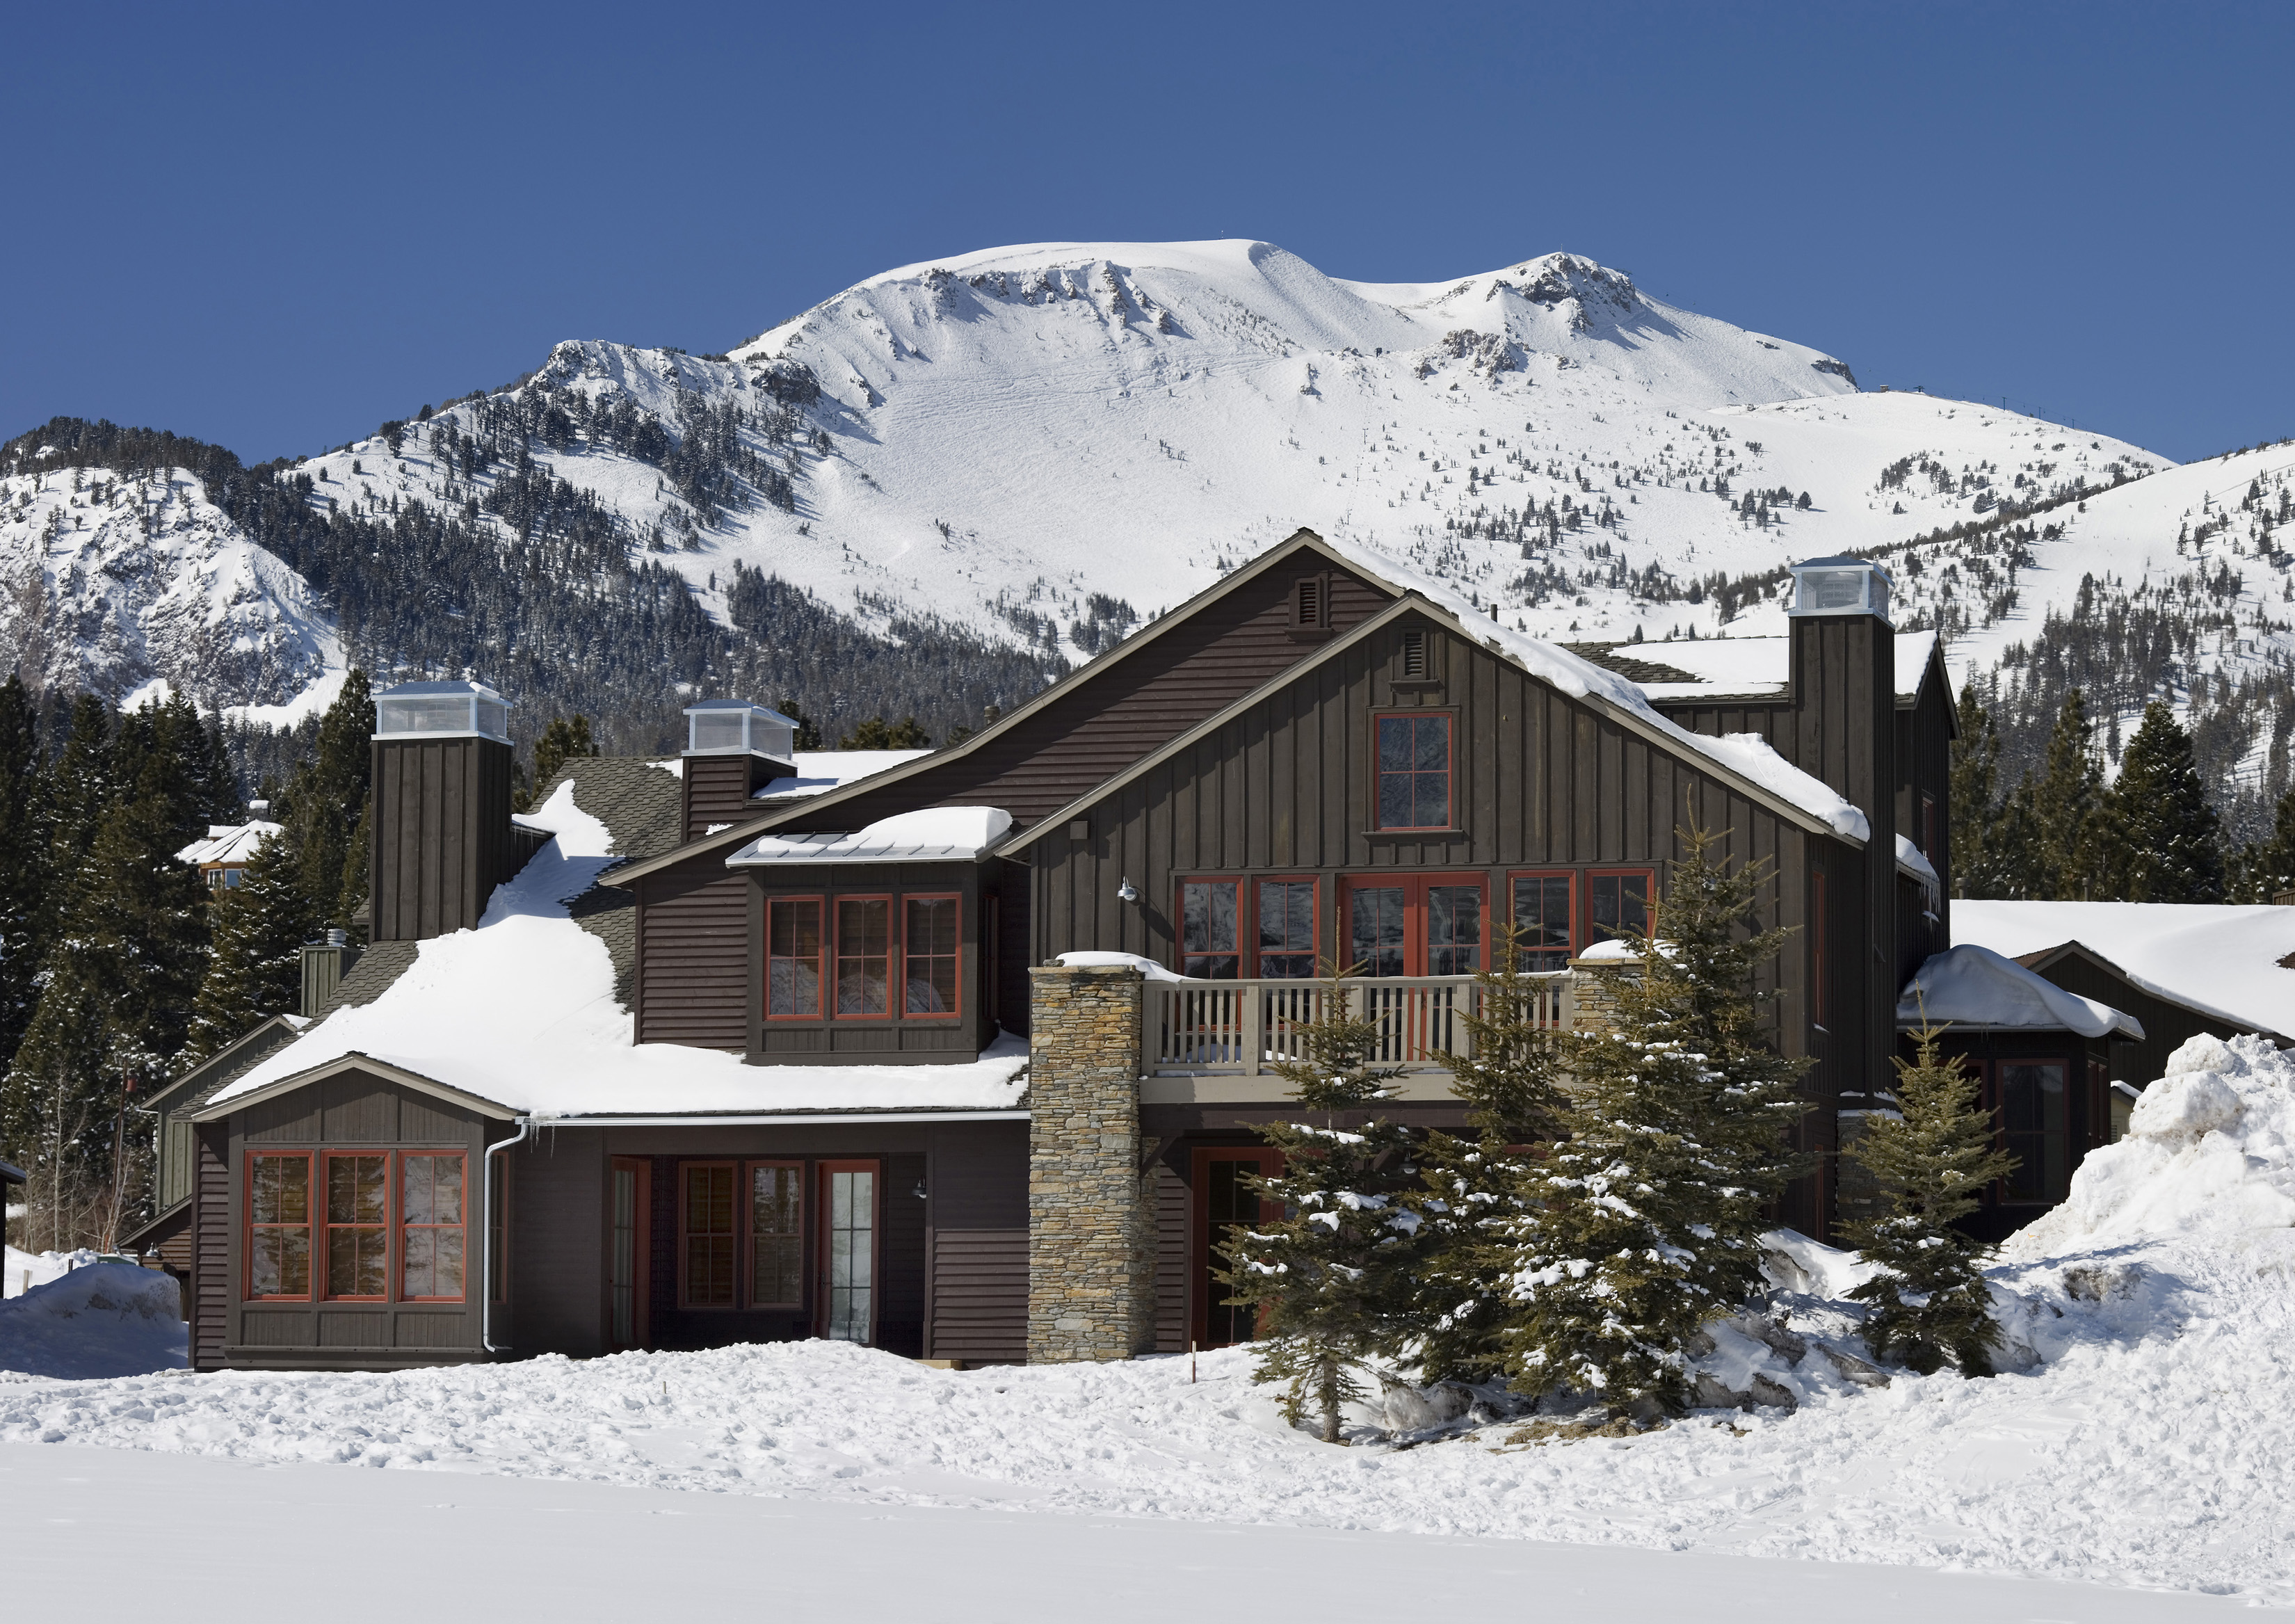 The Lodges at Snowcreek Condos with Mammoth Mtn in Background